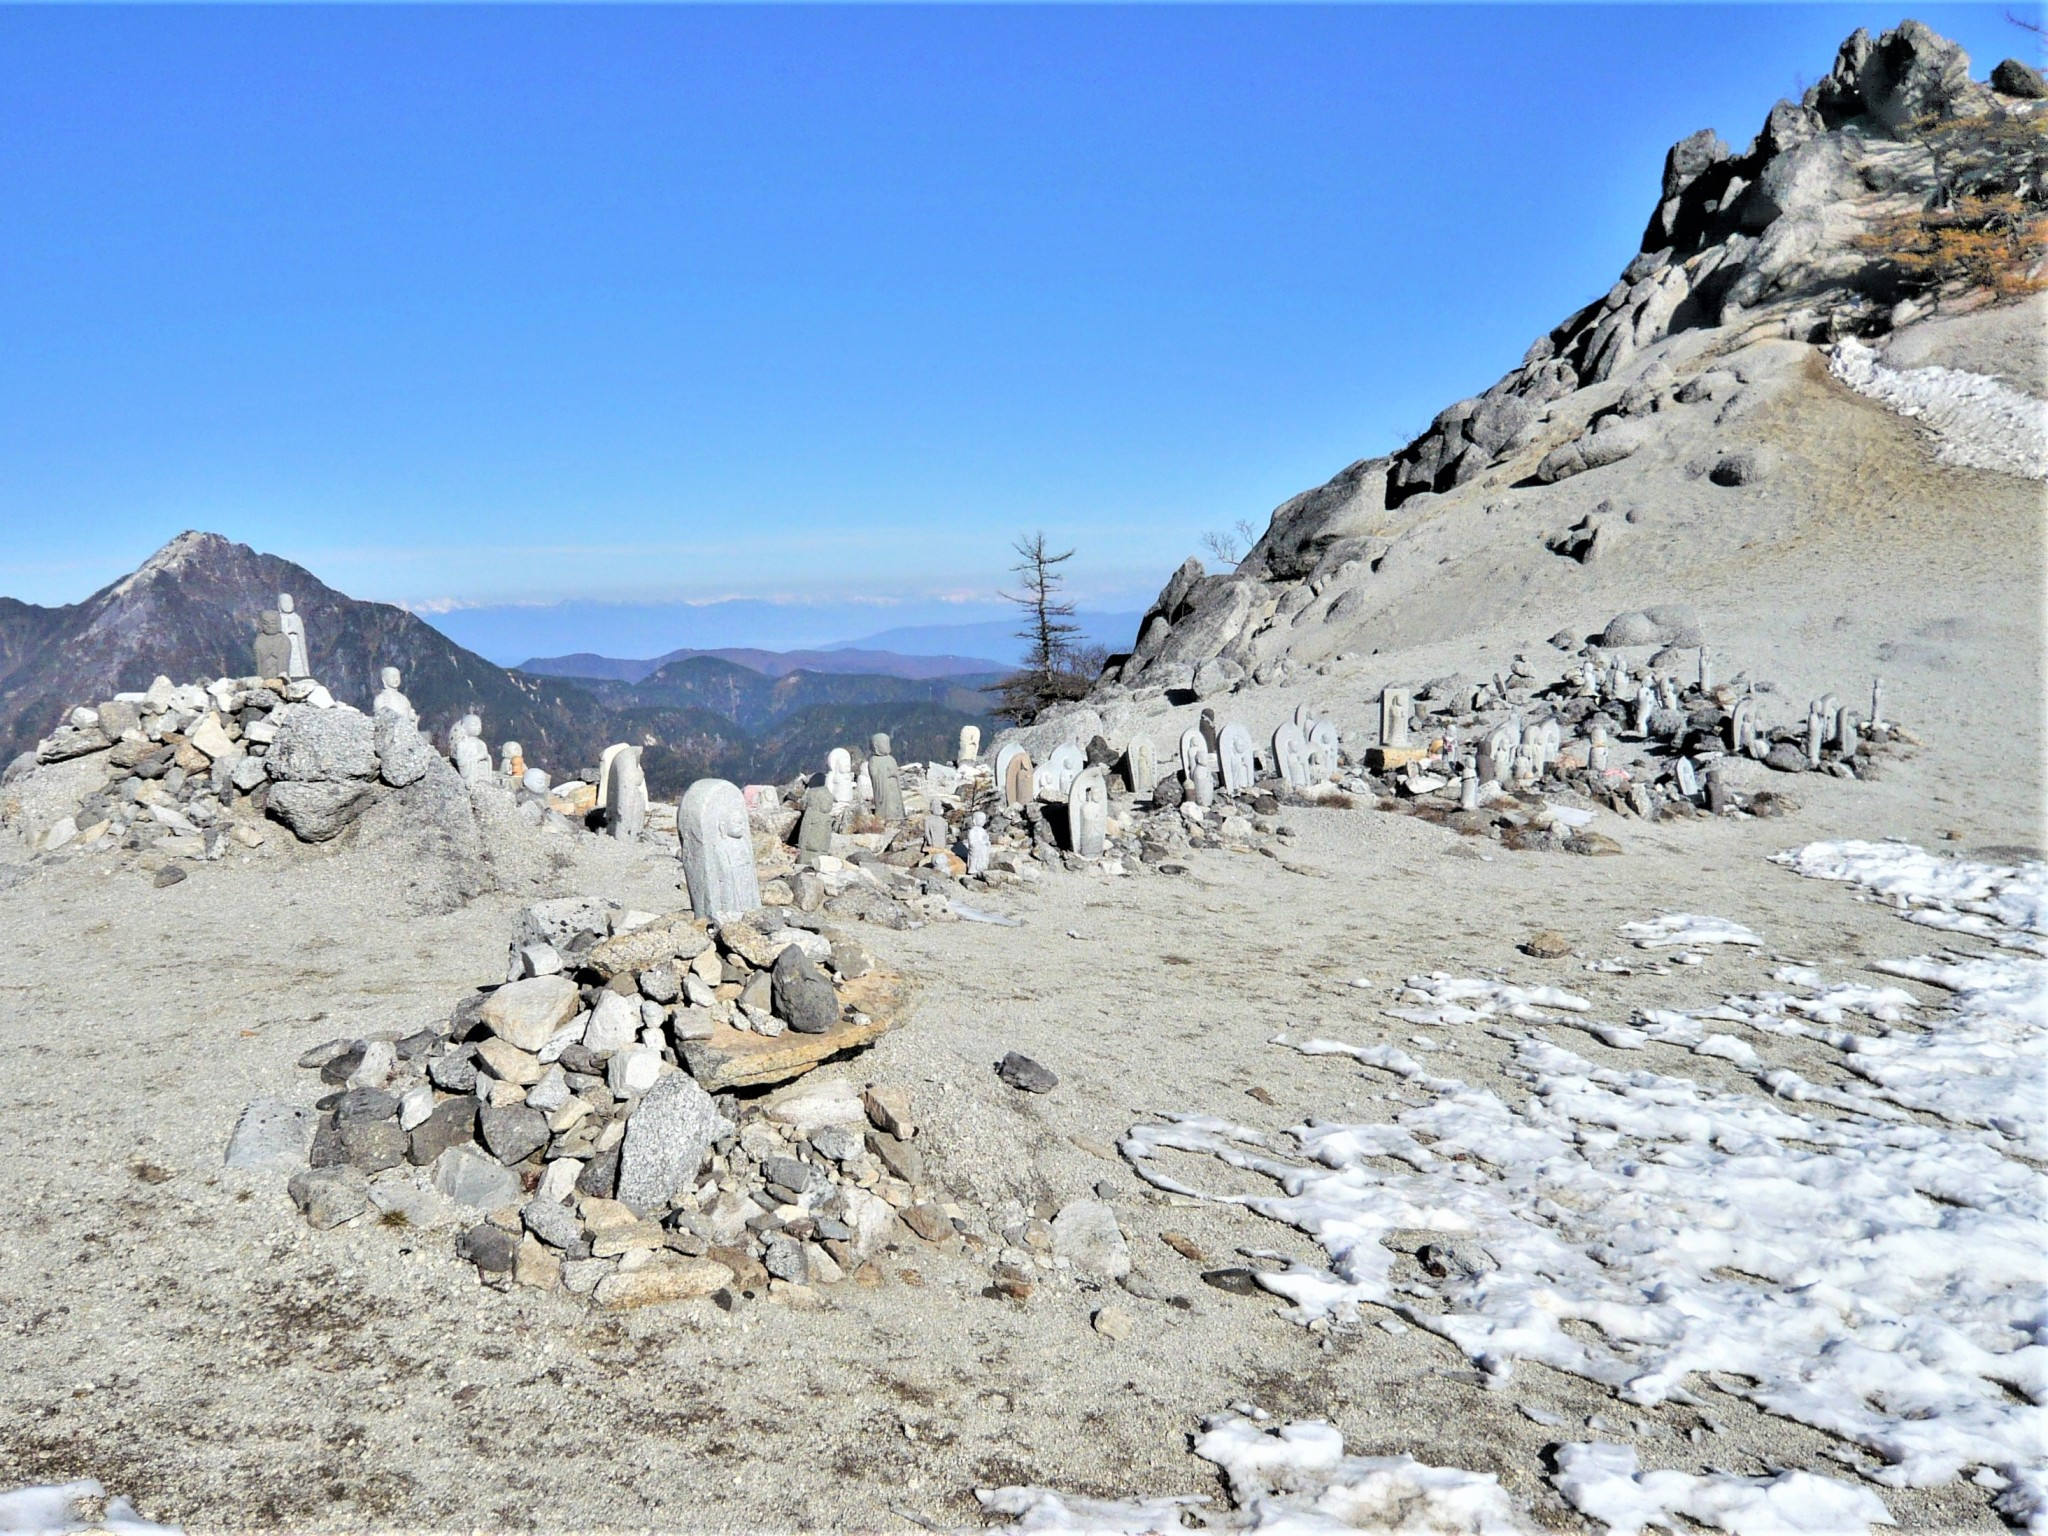 A collection of Buddhist Jizo statues at the summit of Mount Jizo in the Japan Alps.